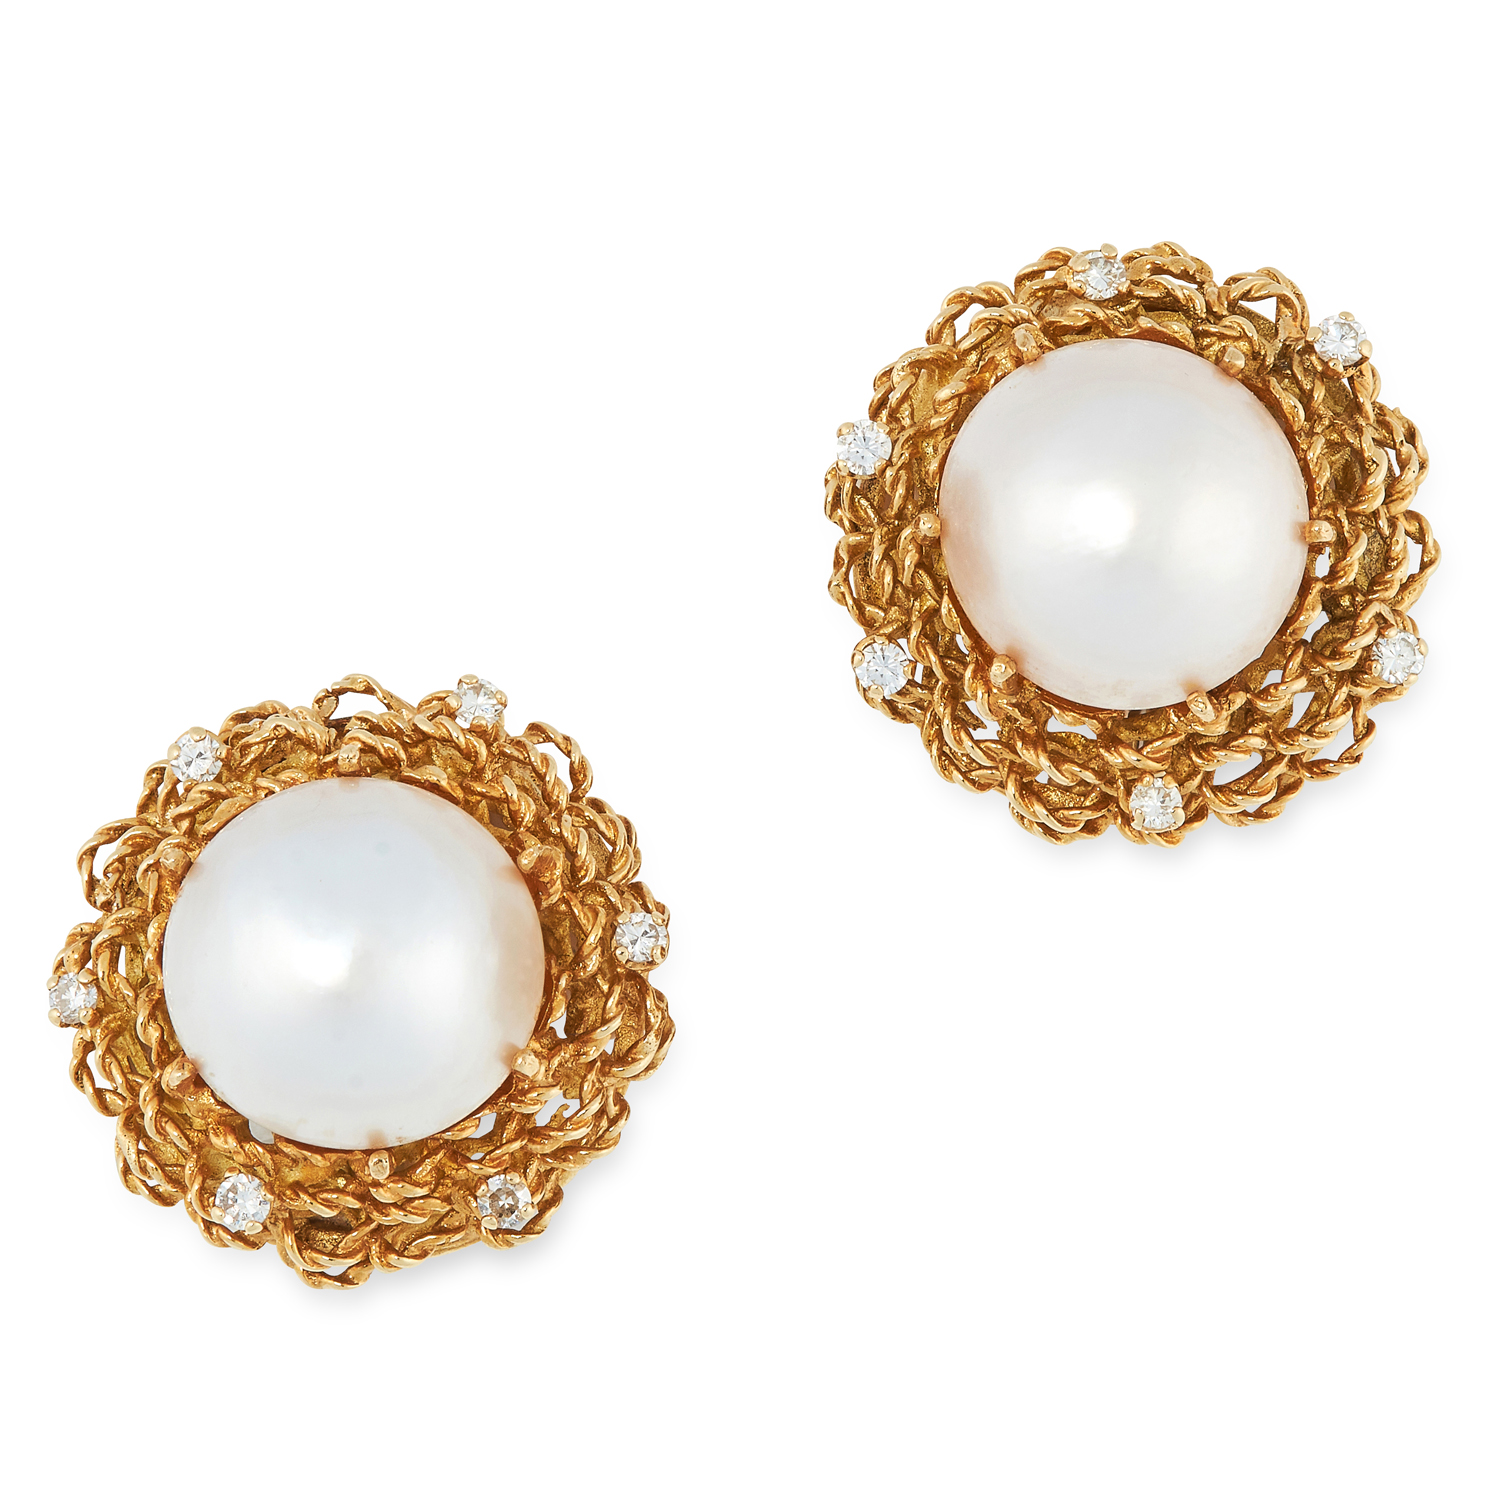 A PAIR OF VINTAGE PEARL AND DIAMOND EARRINGS, 1960s in high carat yellow gold, each set with a